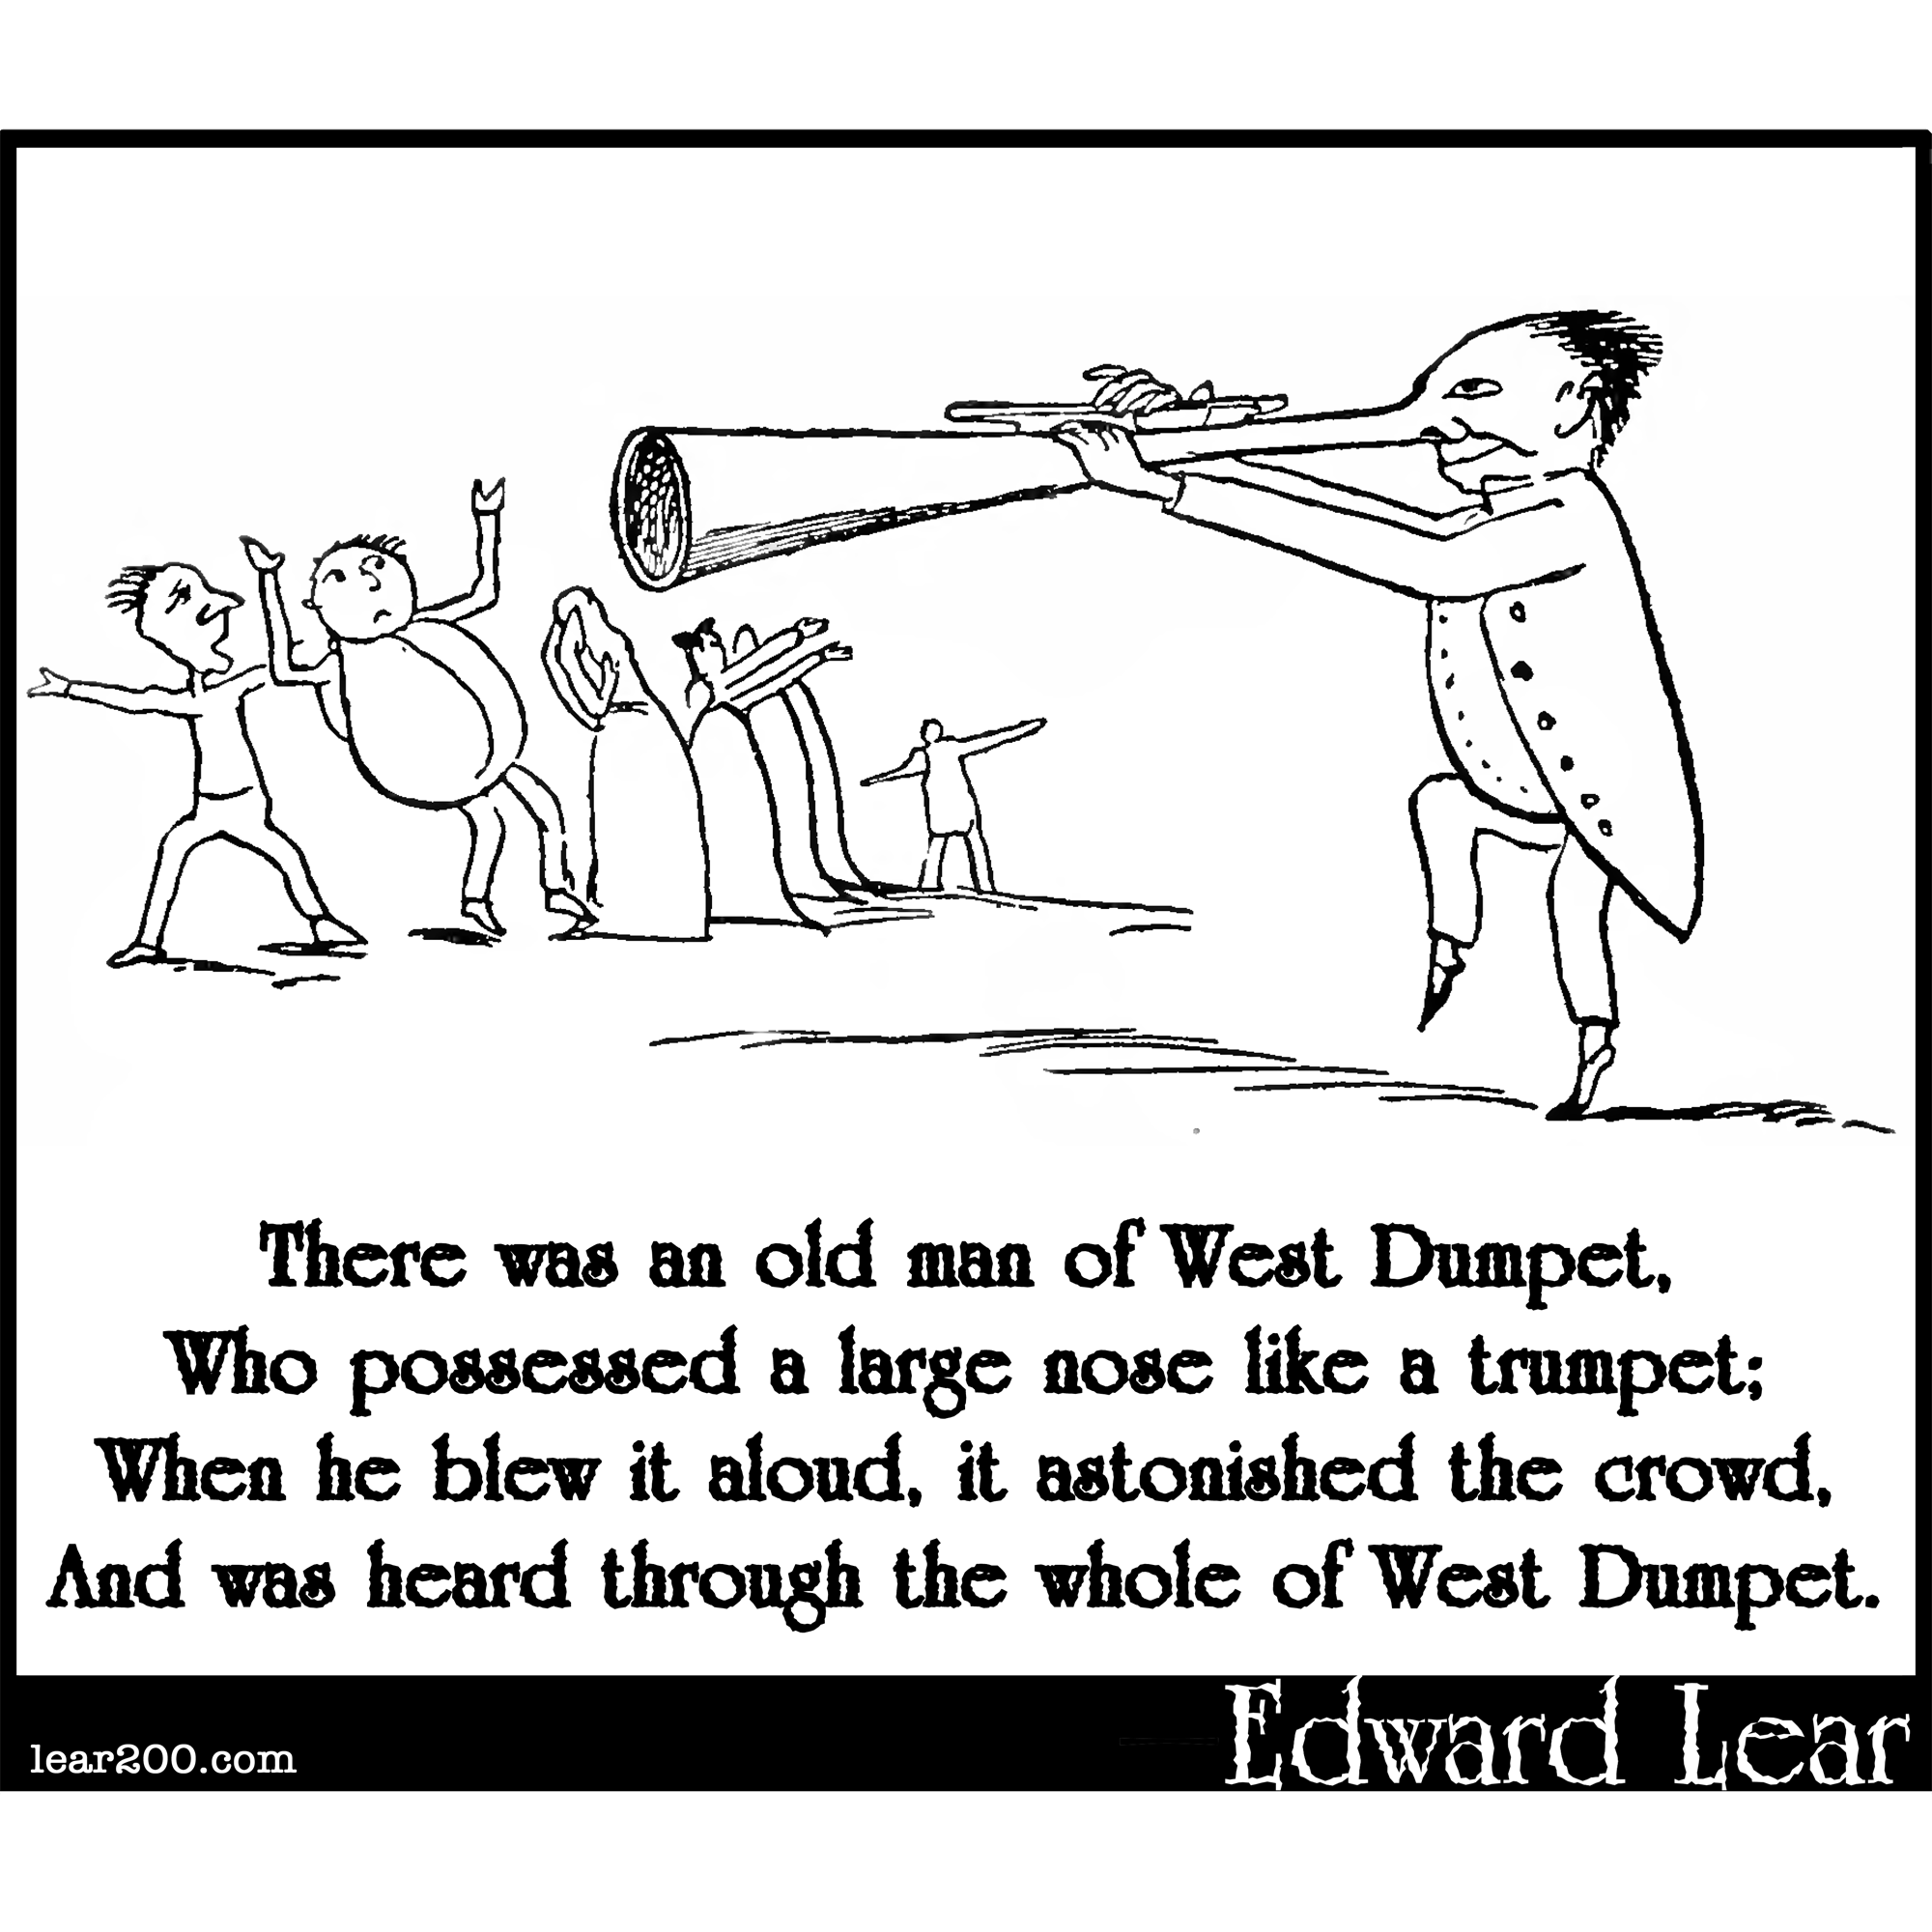 There was an old man of West Dumpet